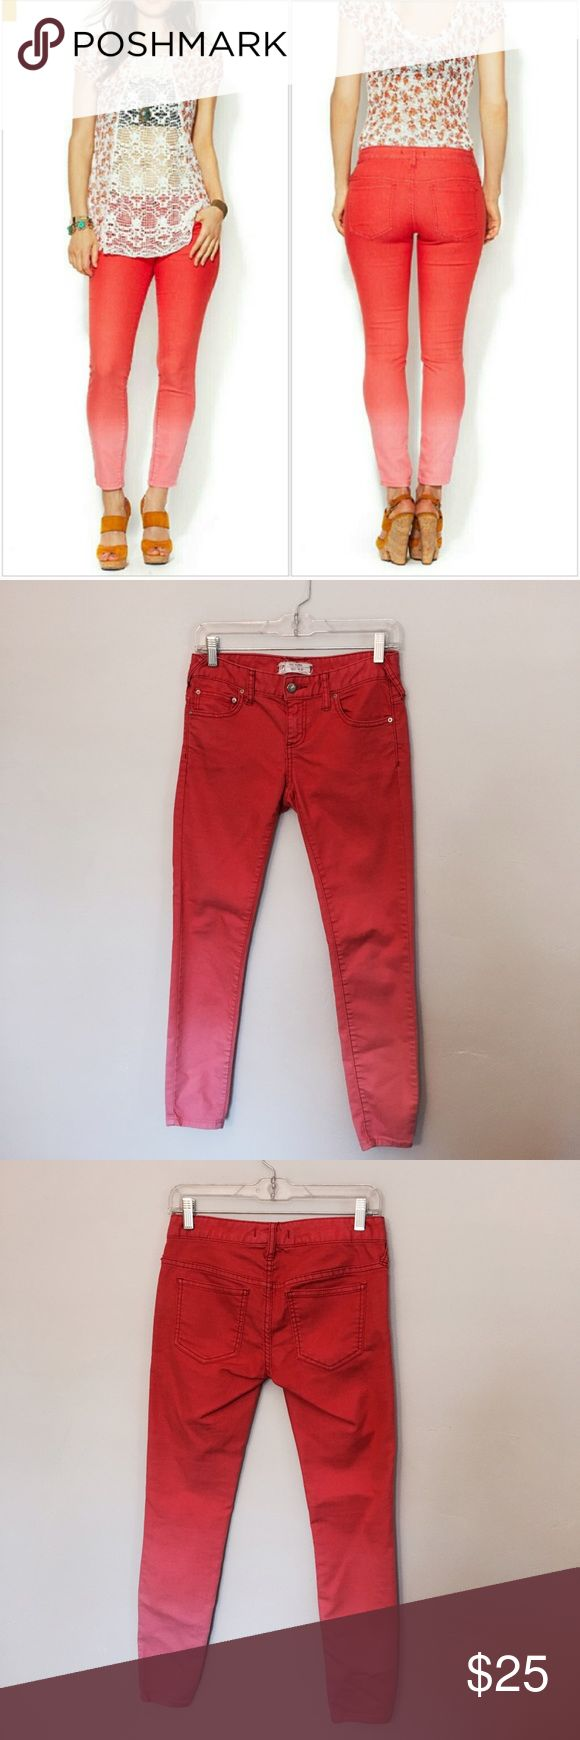 Free People Red Ombré Cropped Skinny Jeans These are a stunning pair of ombre cropped skinny jeans from Free People that are perfect for the warmer weather! In a lovely shade of red that fades to a coral pink, these skinny jeans add a fantastic pop of color to any outfit. Looks great with anything from booties to sandals, these jeans are a great option for any spring or summer look! In excellent used condition with no visible signs of wear, tear, rips, stains, etc. Free People Jeans Skinny